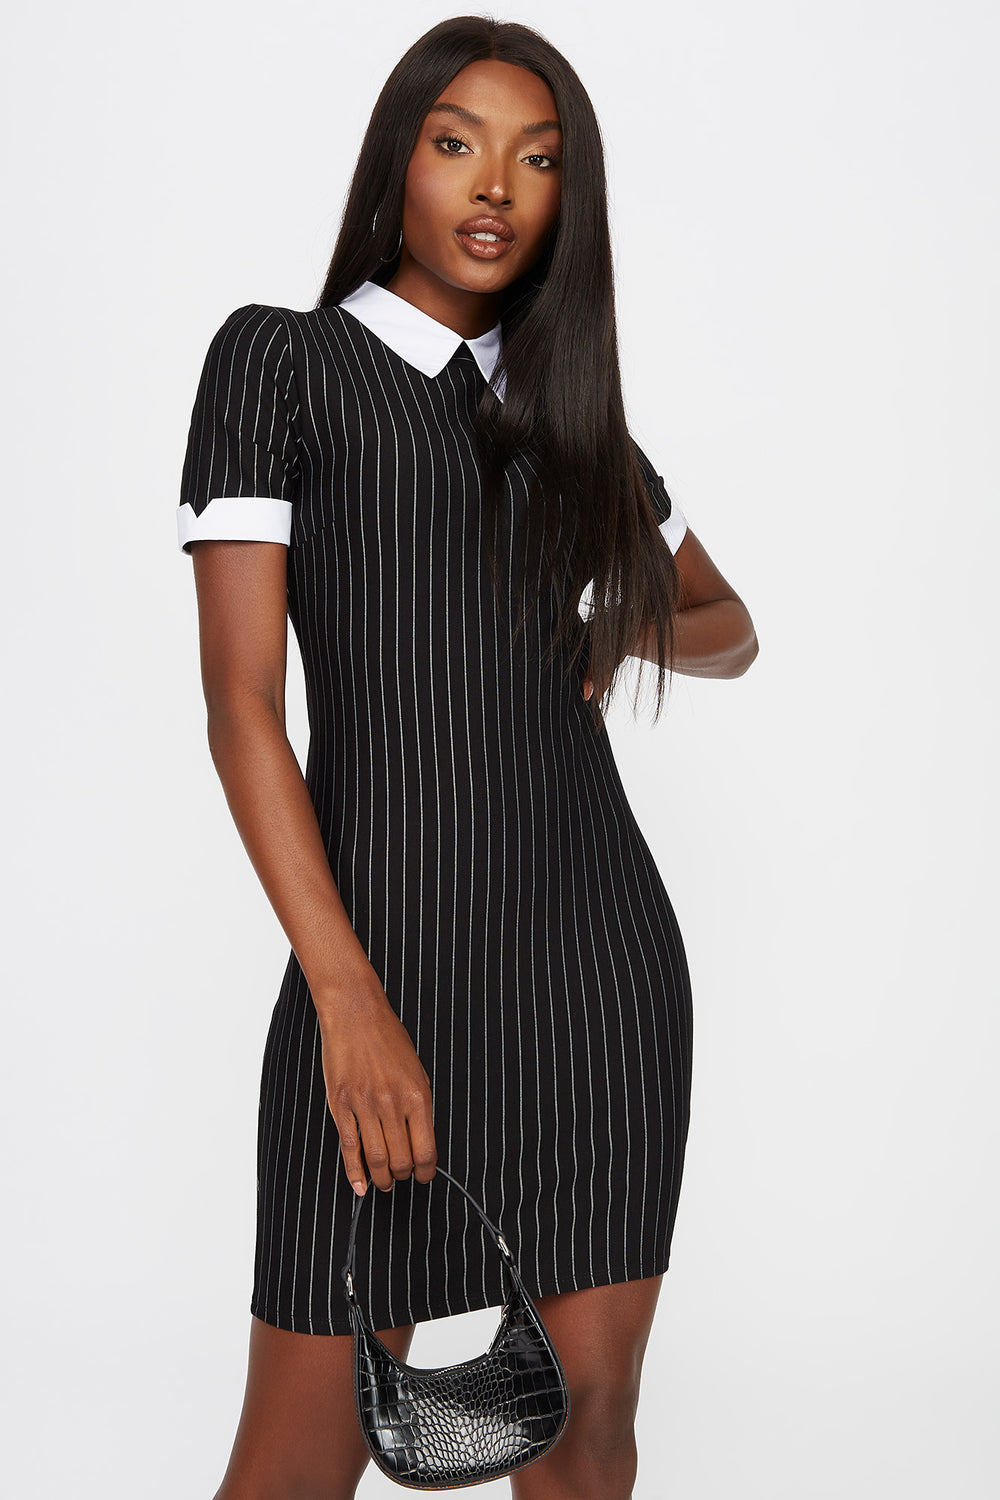 Collar Contrast Mini Dress Black with White